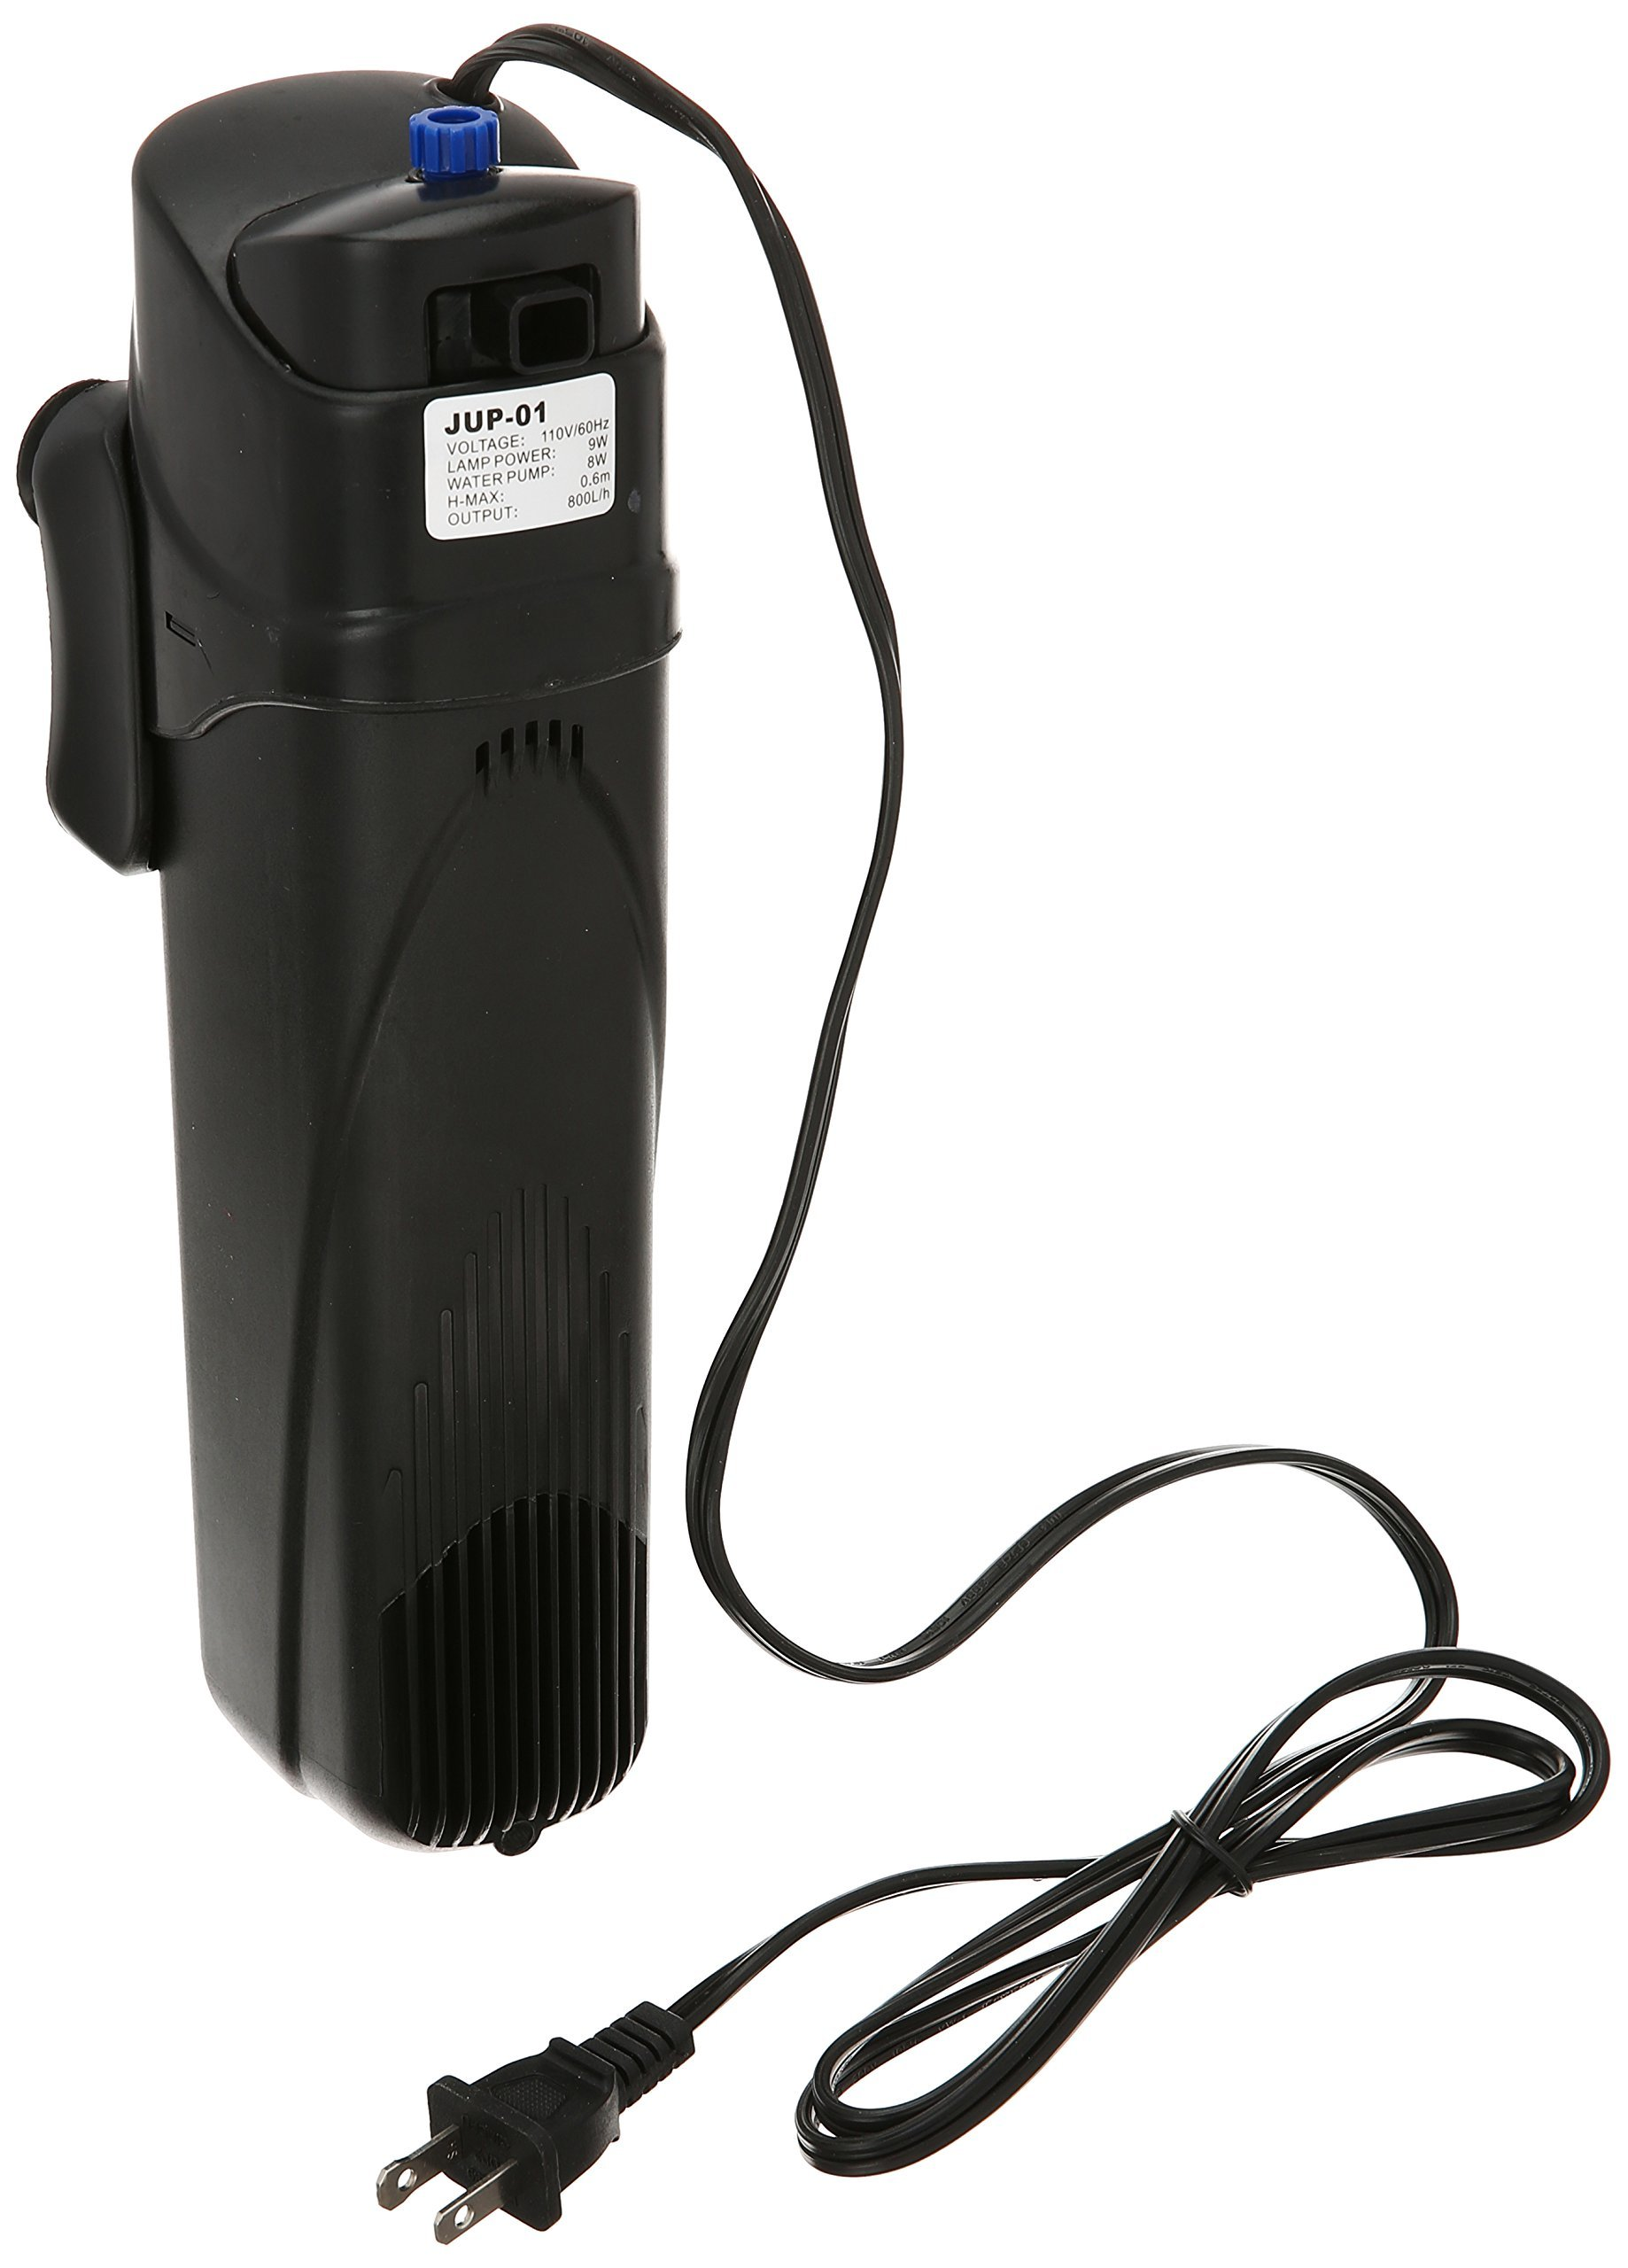 SunSun JUP-01 9W UV Sterilizer Submersible Filter Pump by SunSun